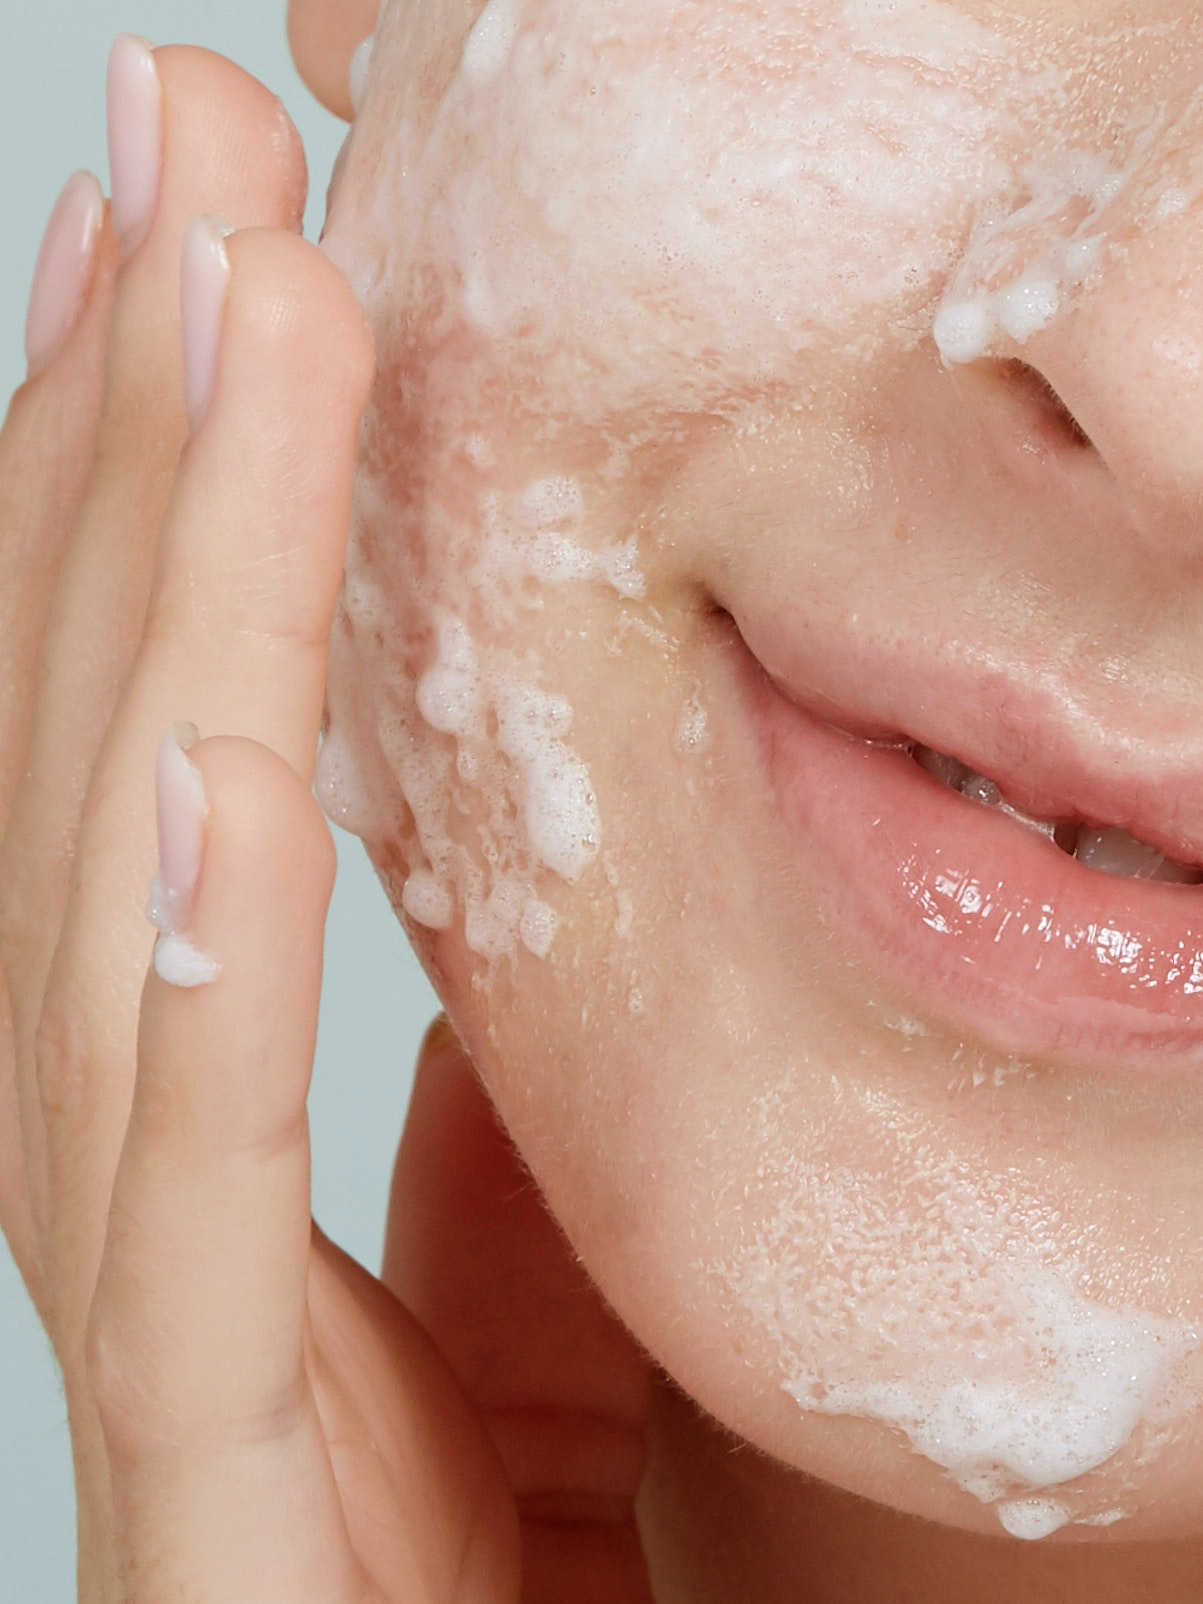 Things You Shouldn't Use After a Fraxel laser: Exfoliants